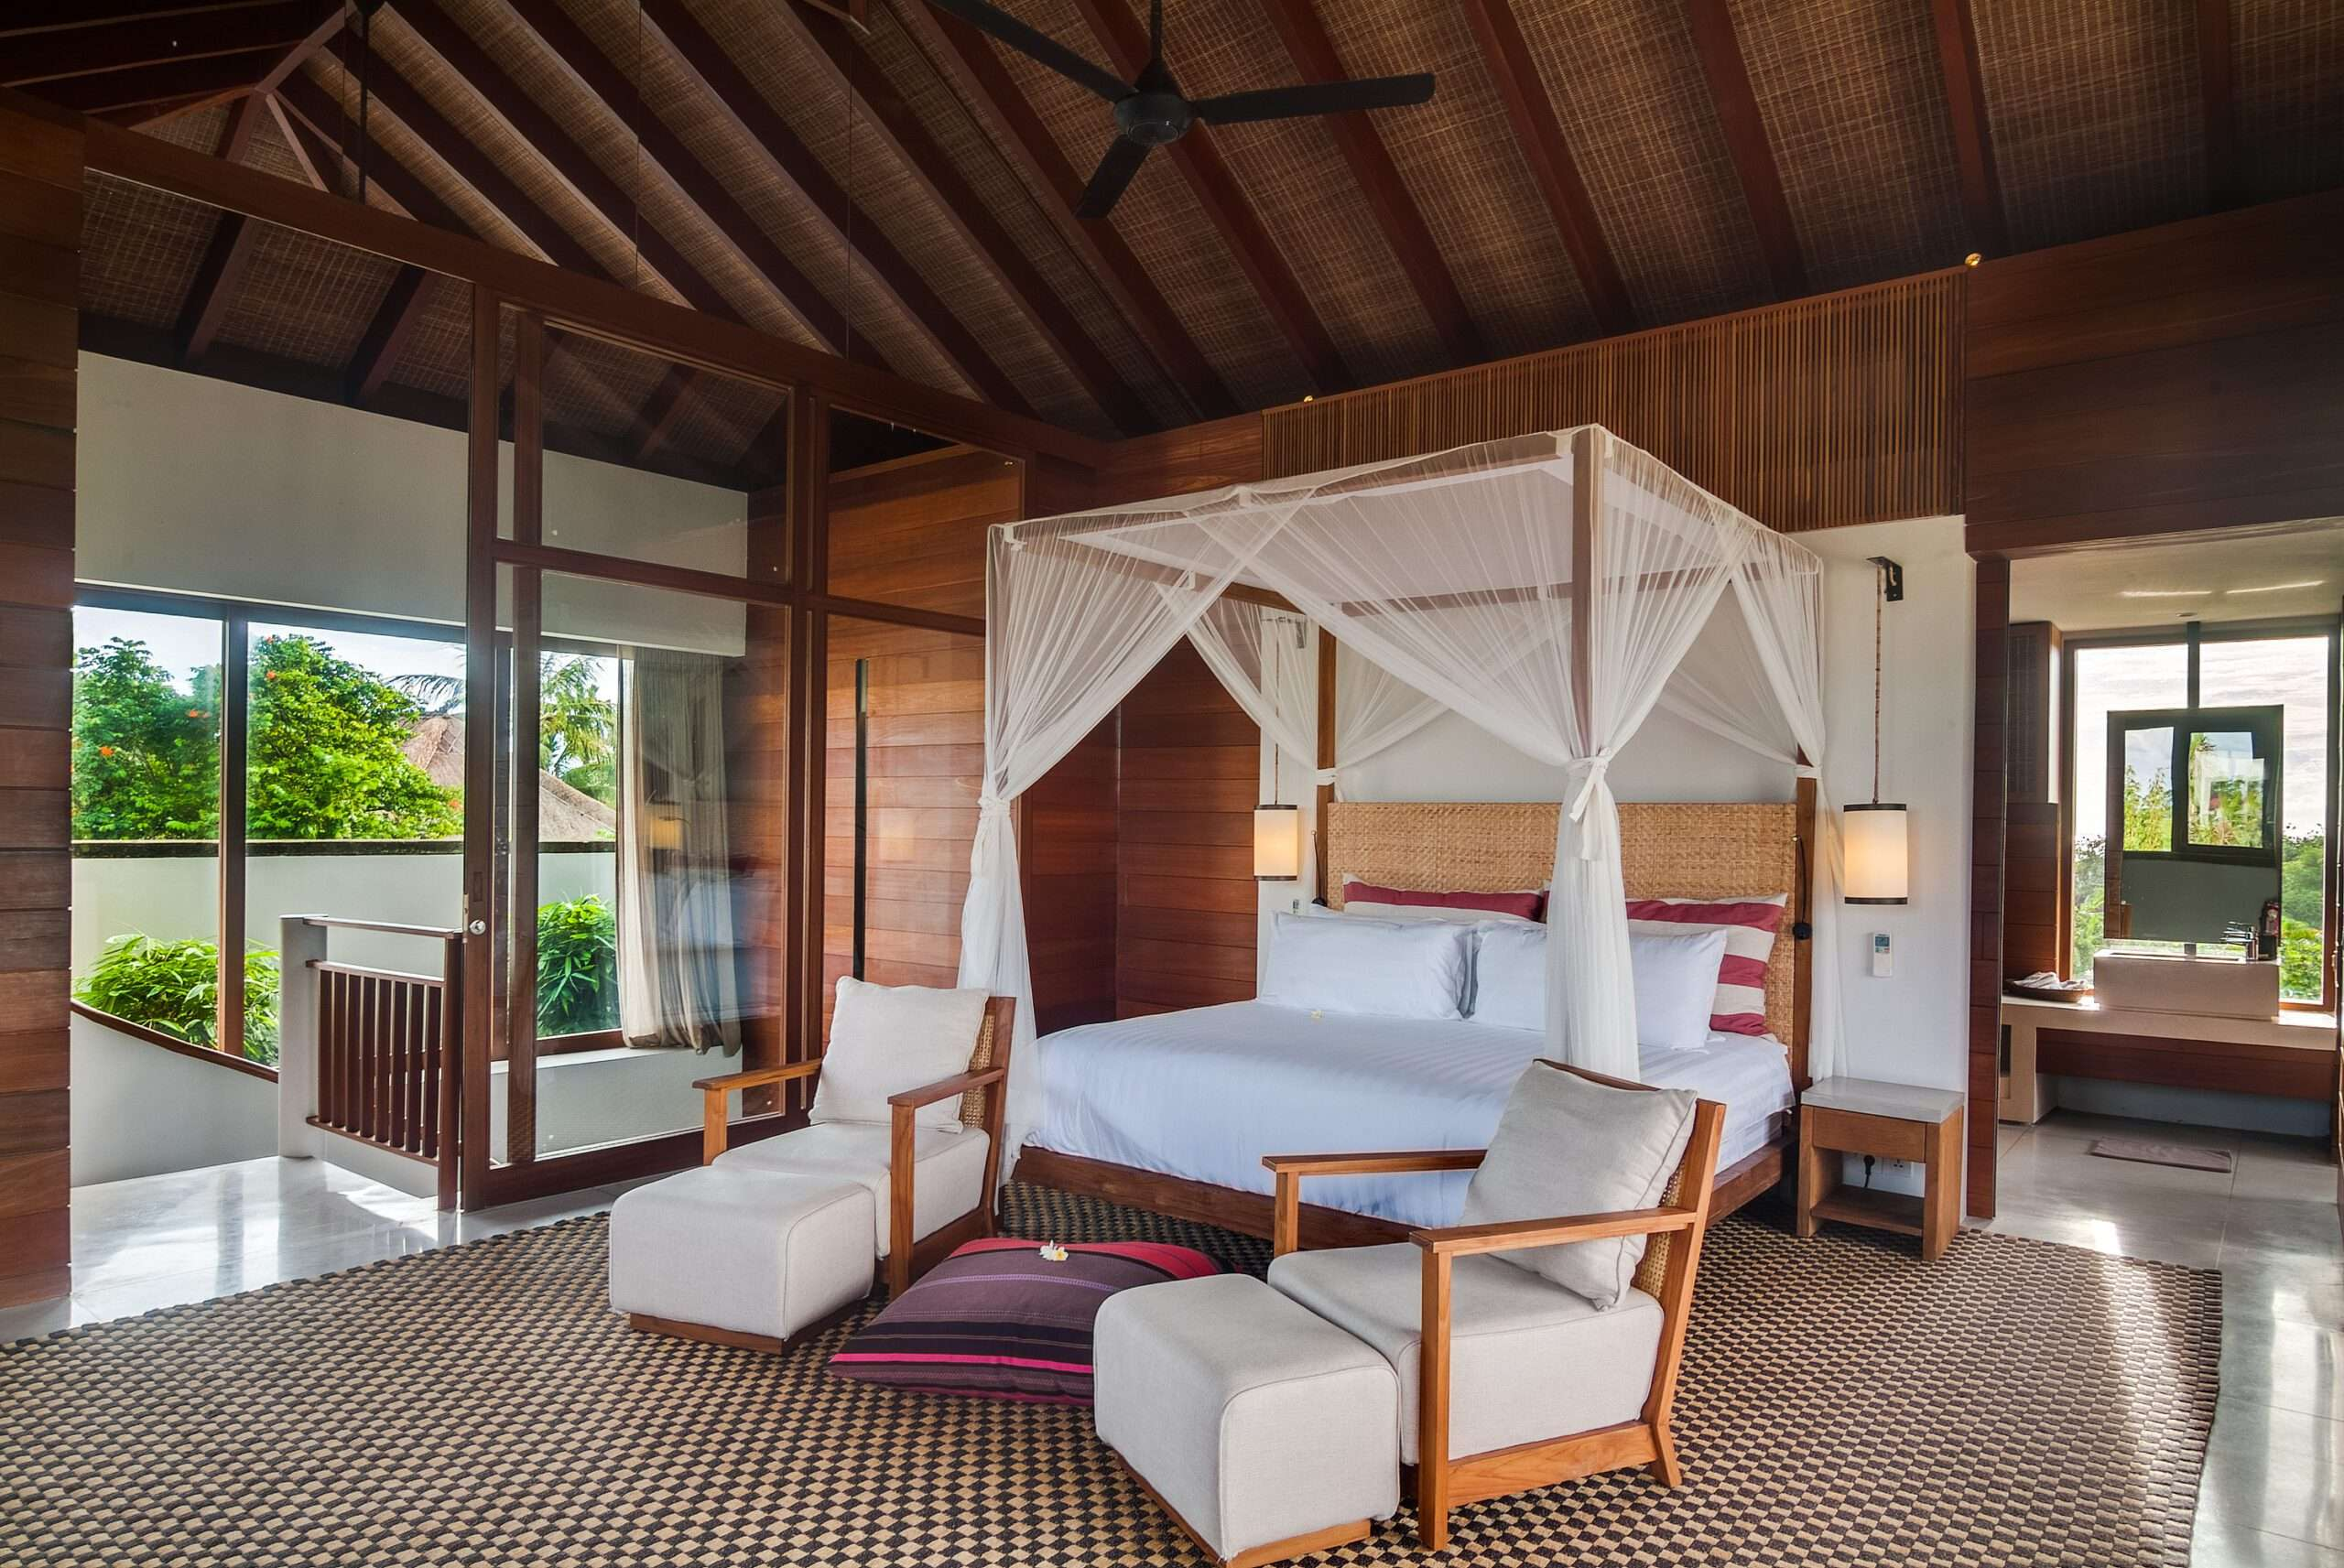 4 poster bed with two armchairs at the end, in a spacious bedroom at Ambalama Bali, one of the top villas in the world